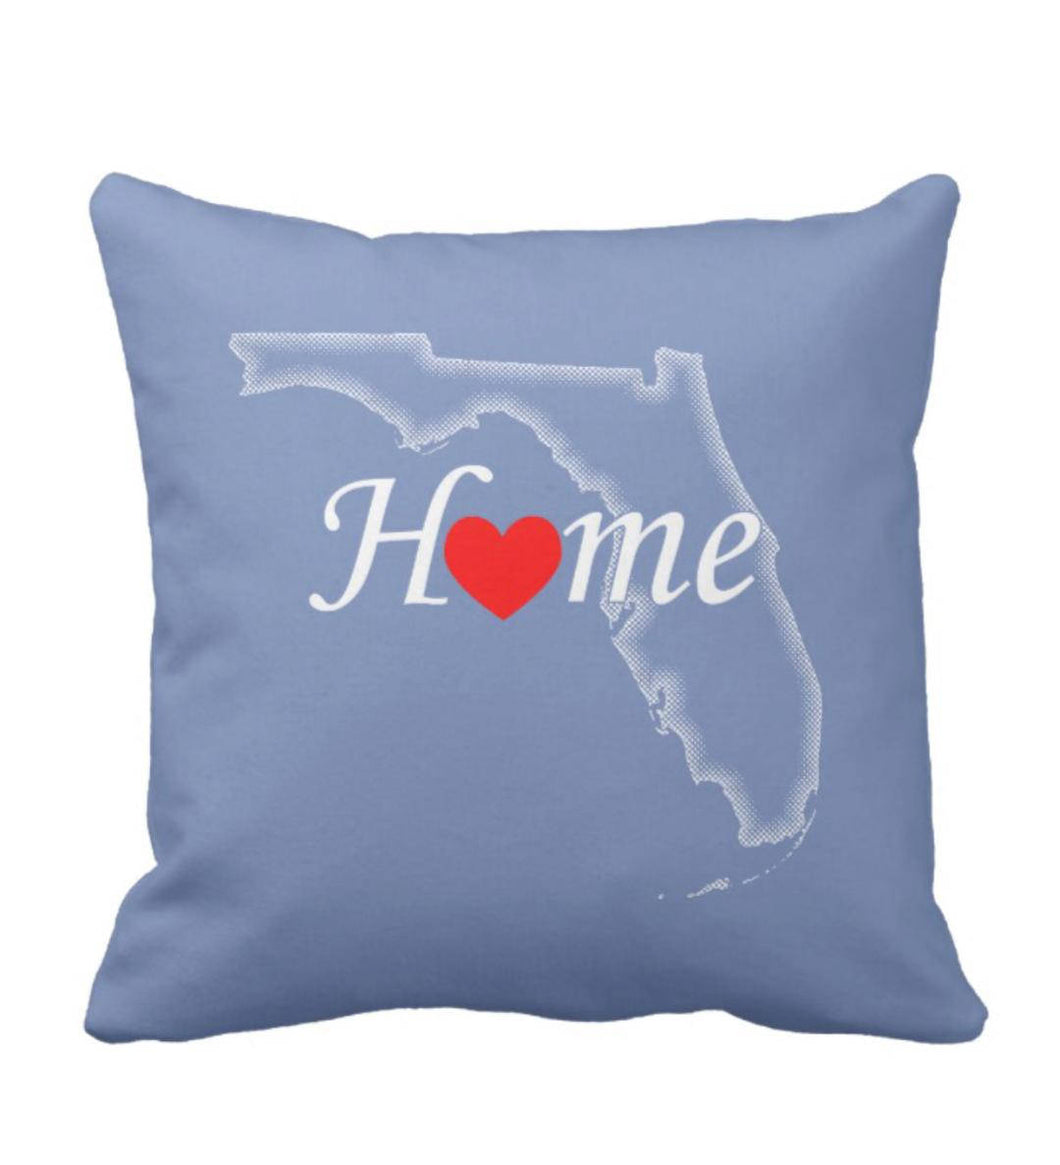 Throw Pillow Florida Home Love